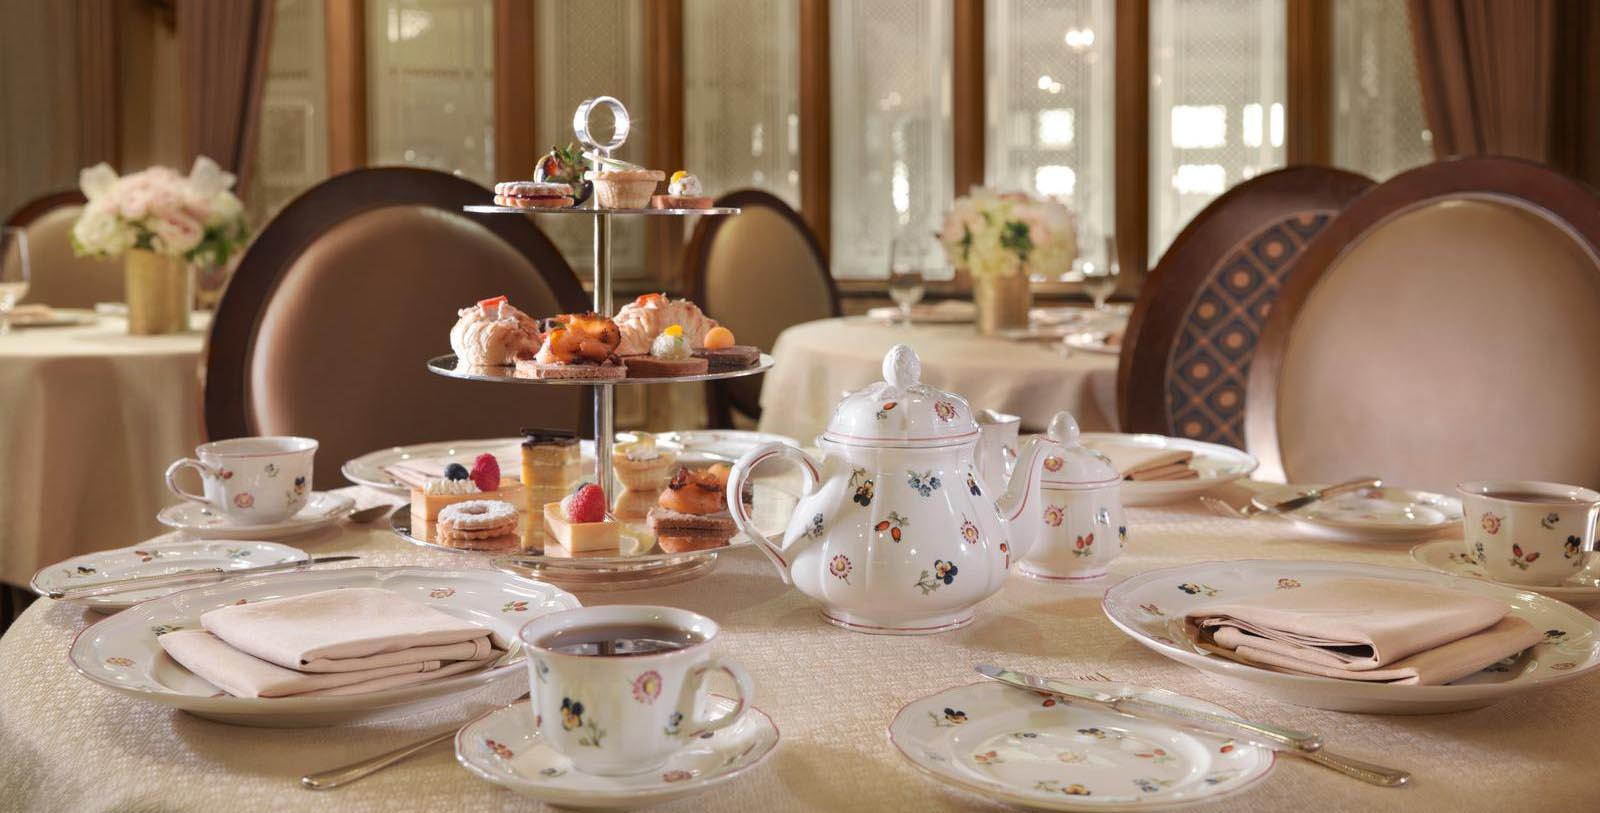 Image of Afternoon Tea Served in Chez Philippe at The Peabody Memphis, 1869, Member of Historic Hotels of America, in Memphis, Tennessee, Taste